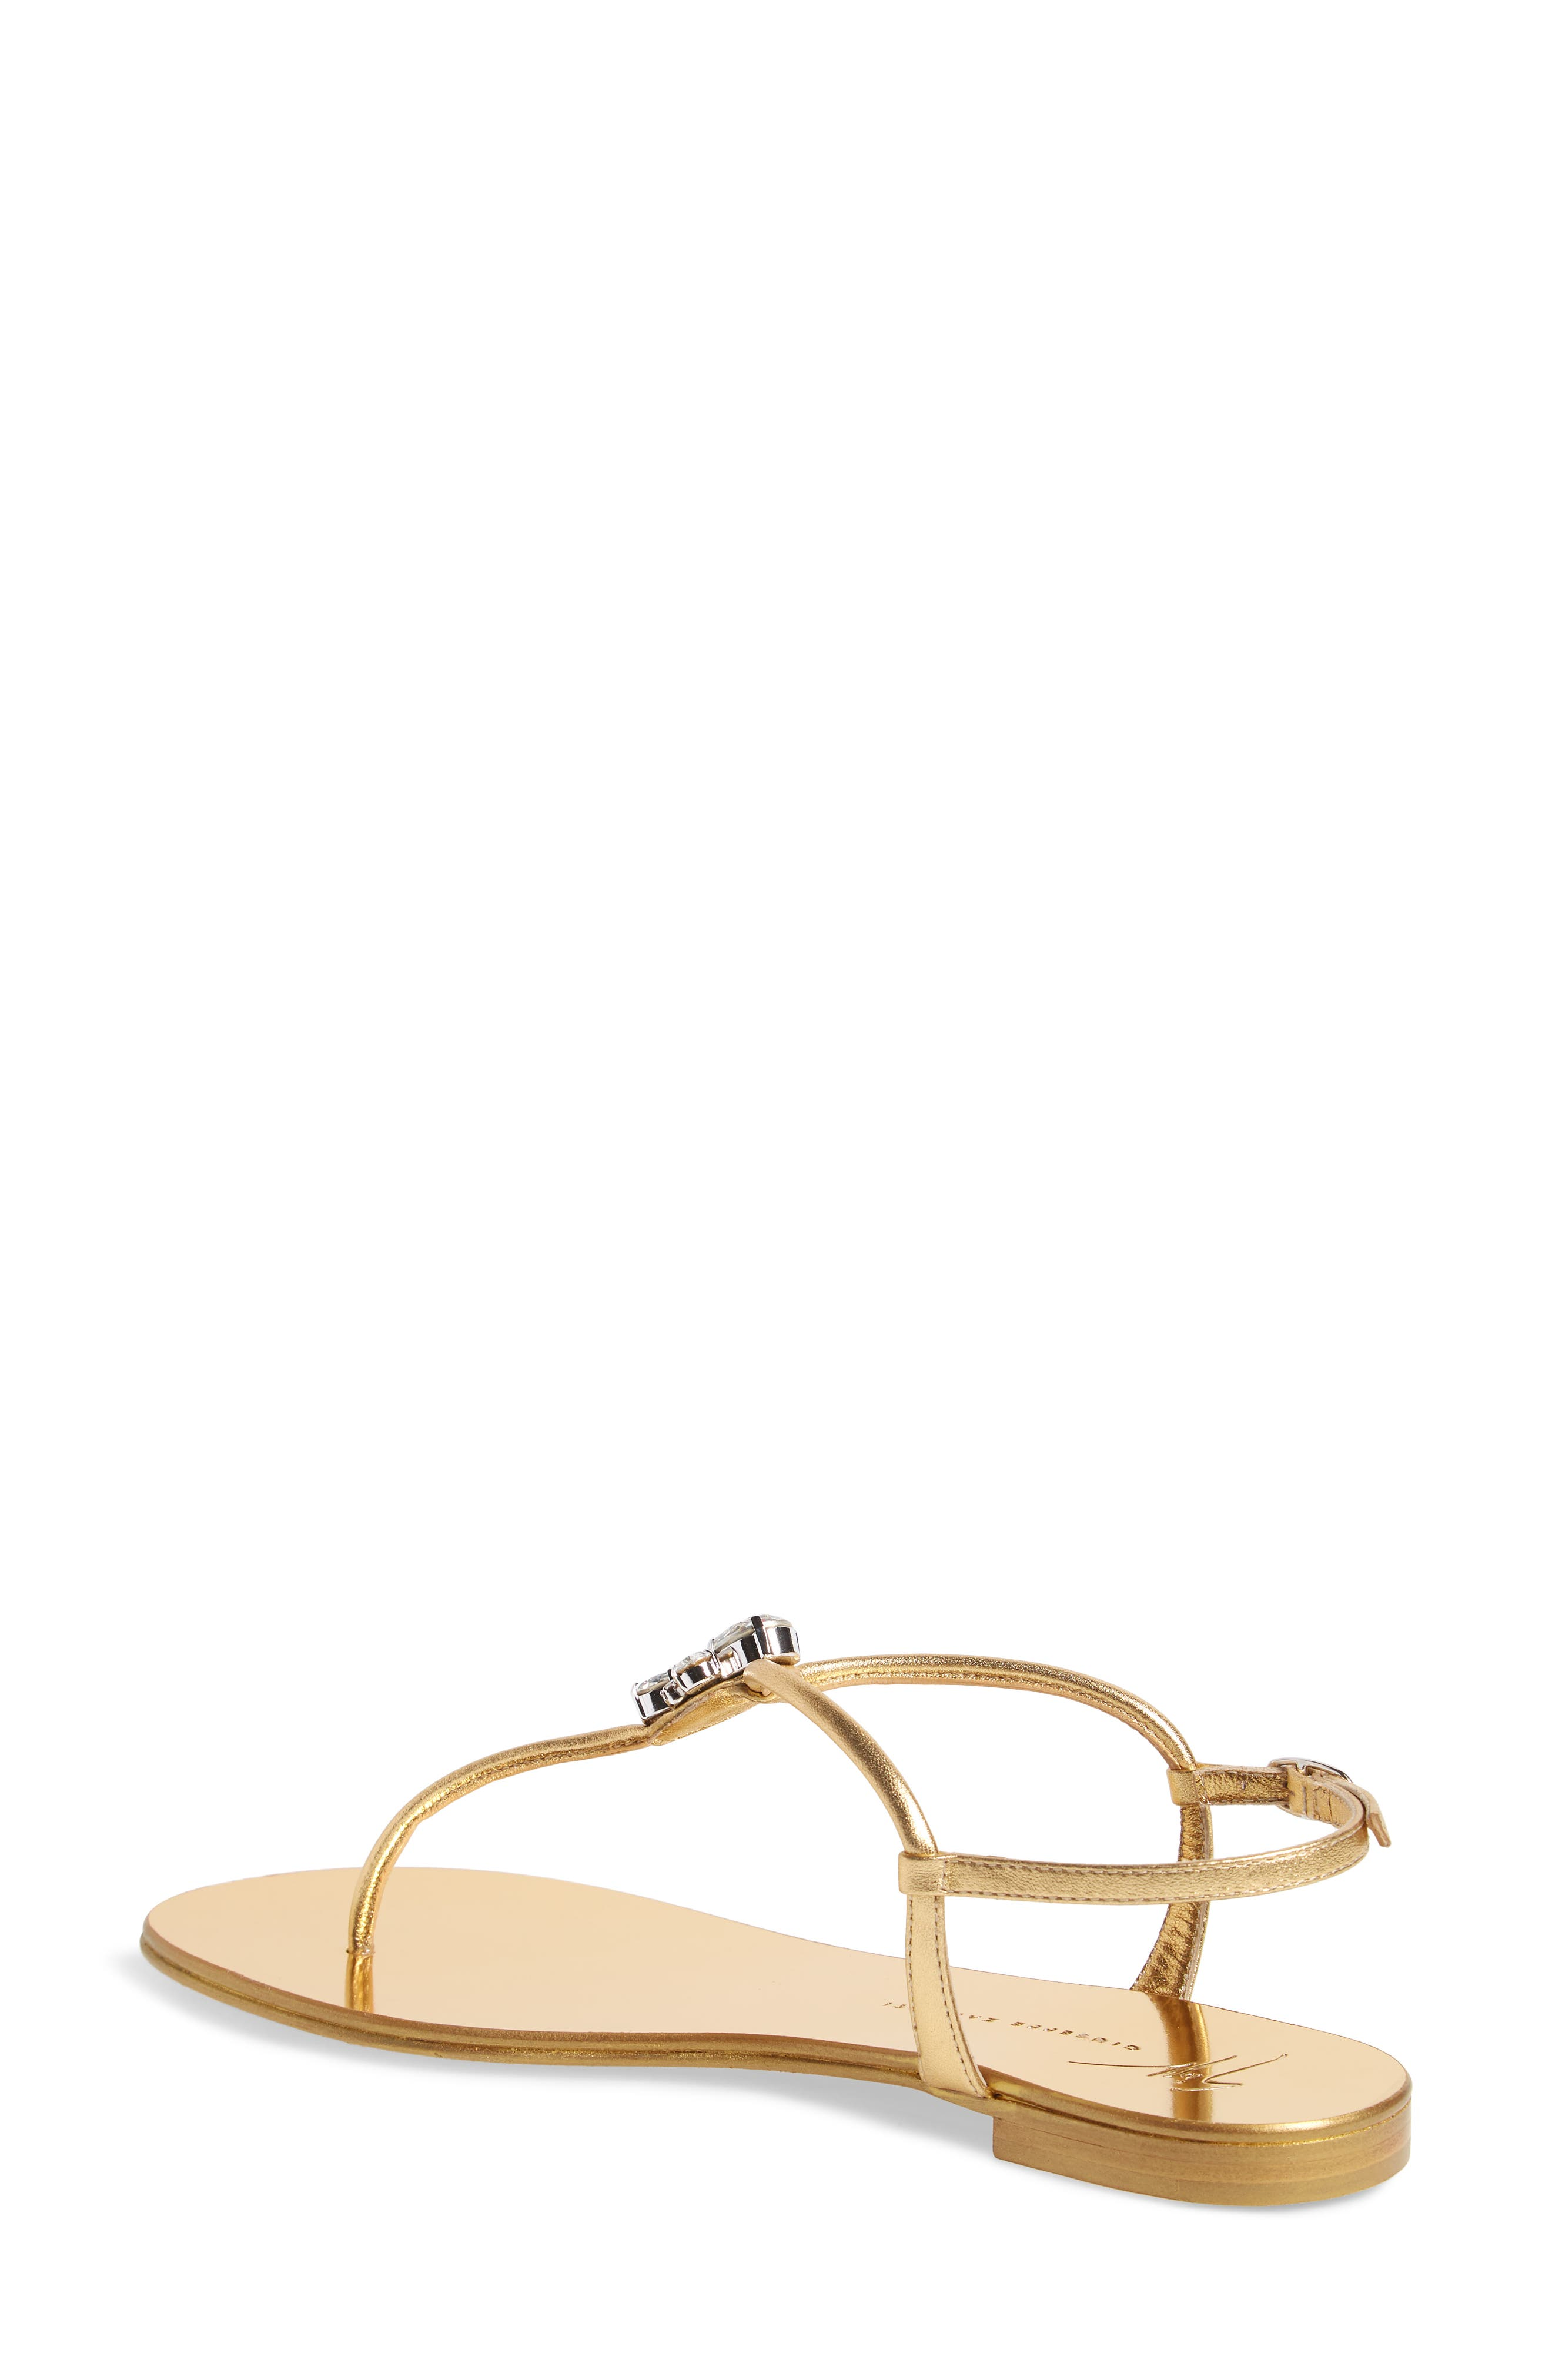 Crystal T-Strap Sandal,                             Alternate thumbnail 2, color,                             GOLD